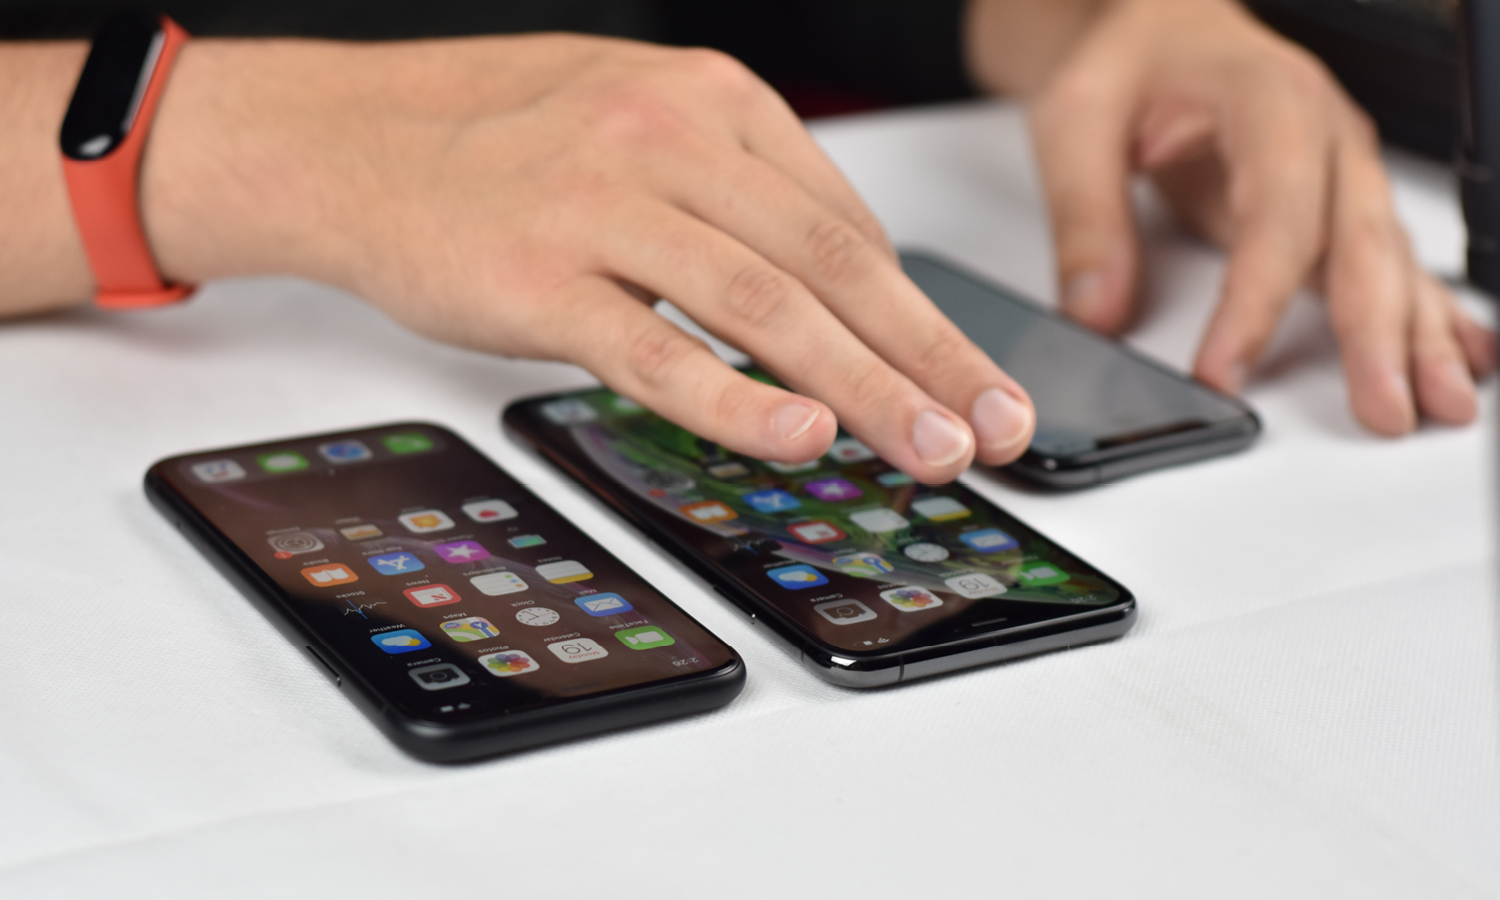 iPhone OLEDs: Choosing the Best Assembly for Your Repairs